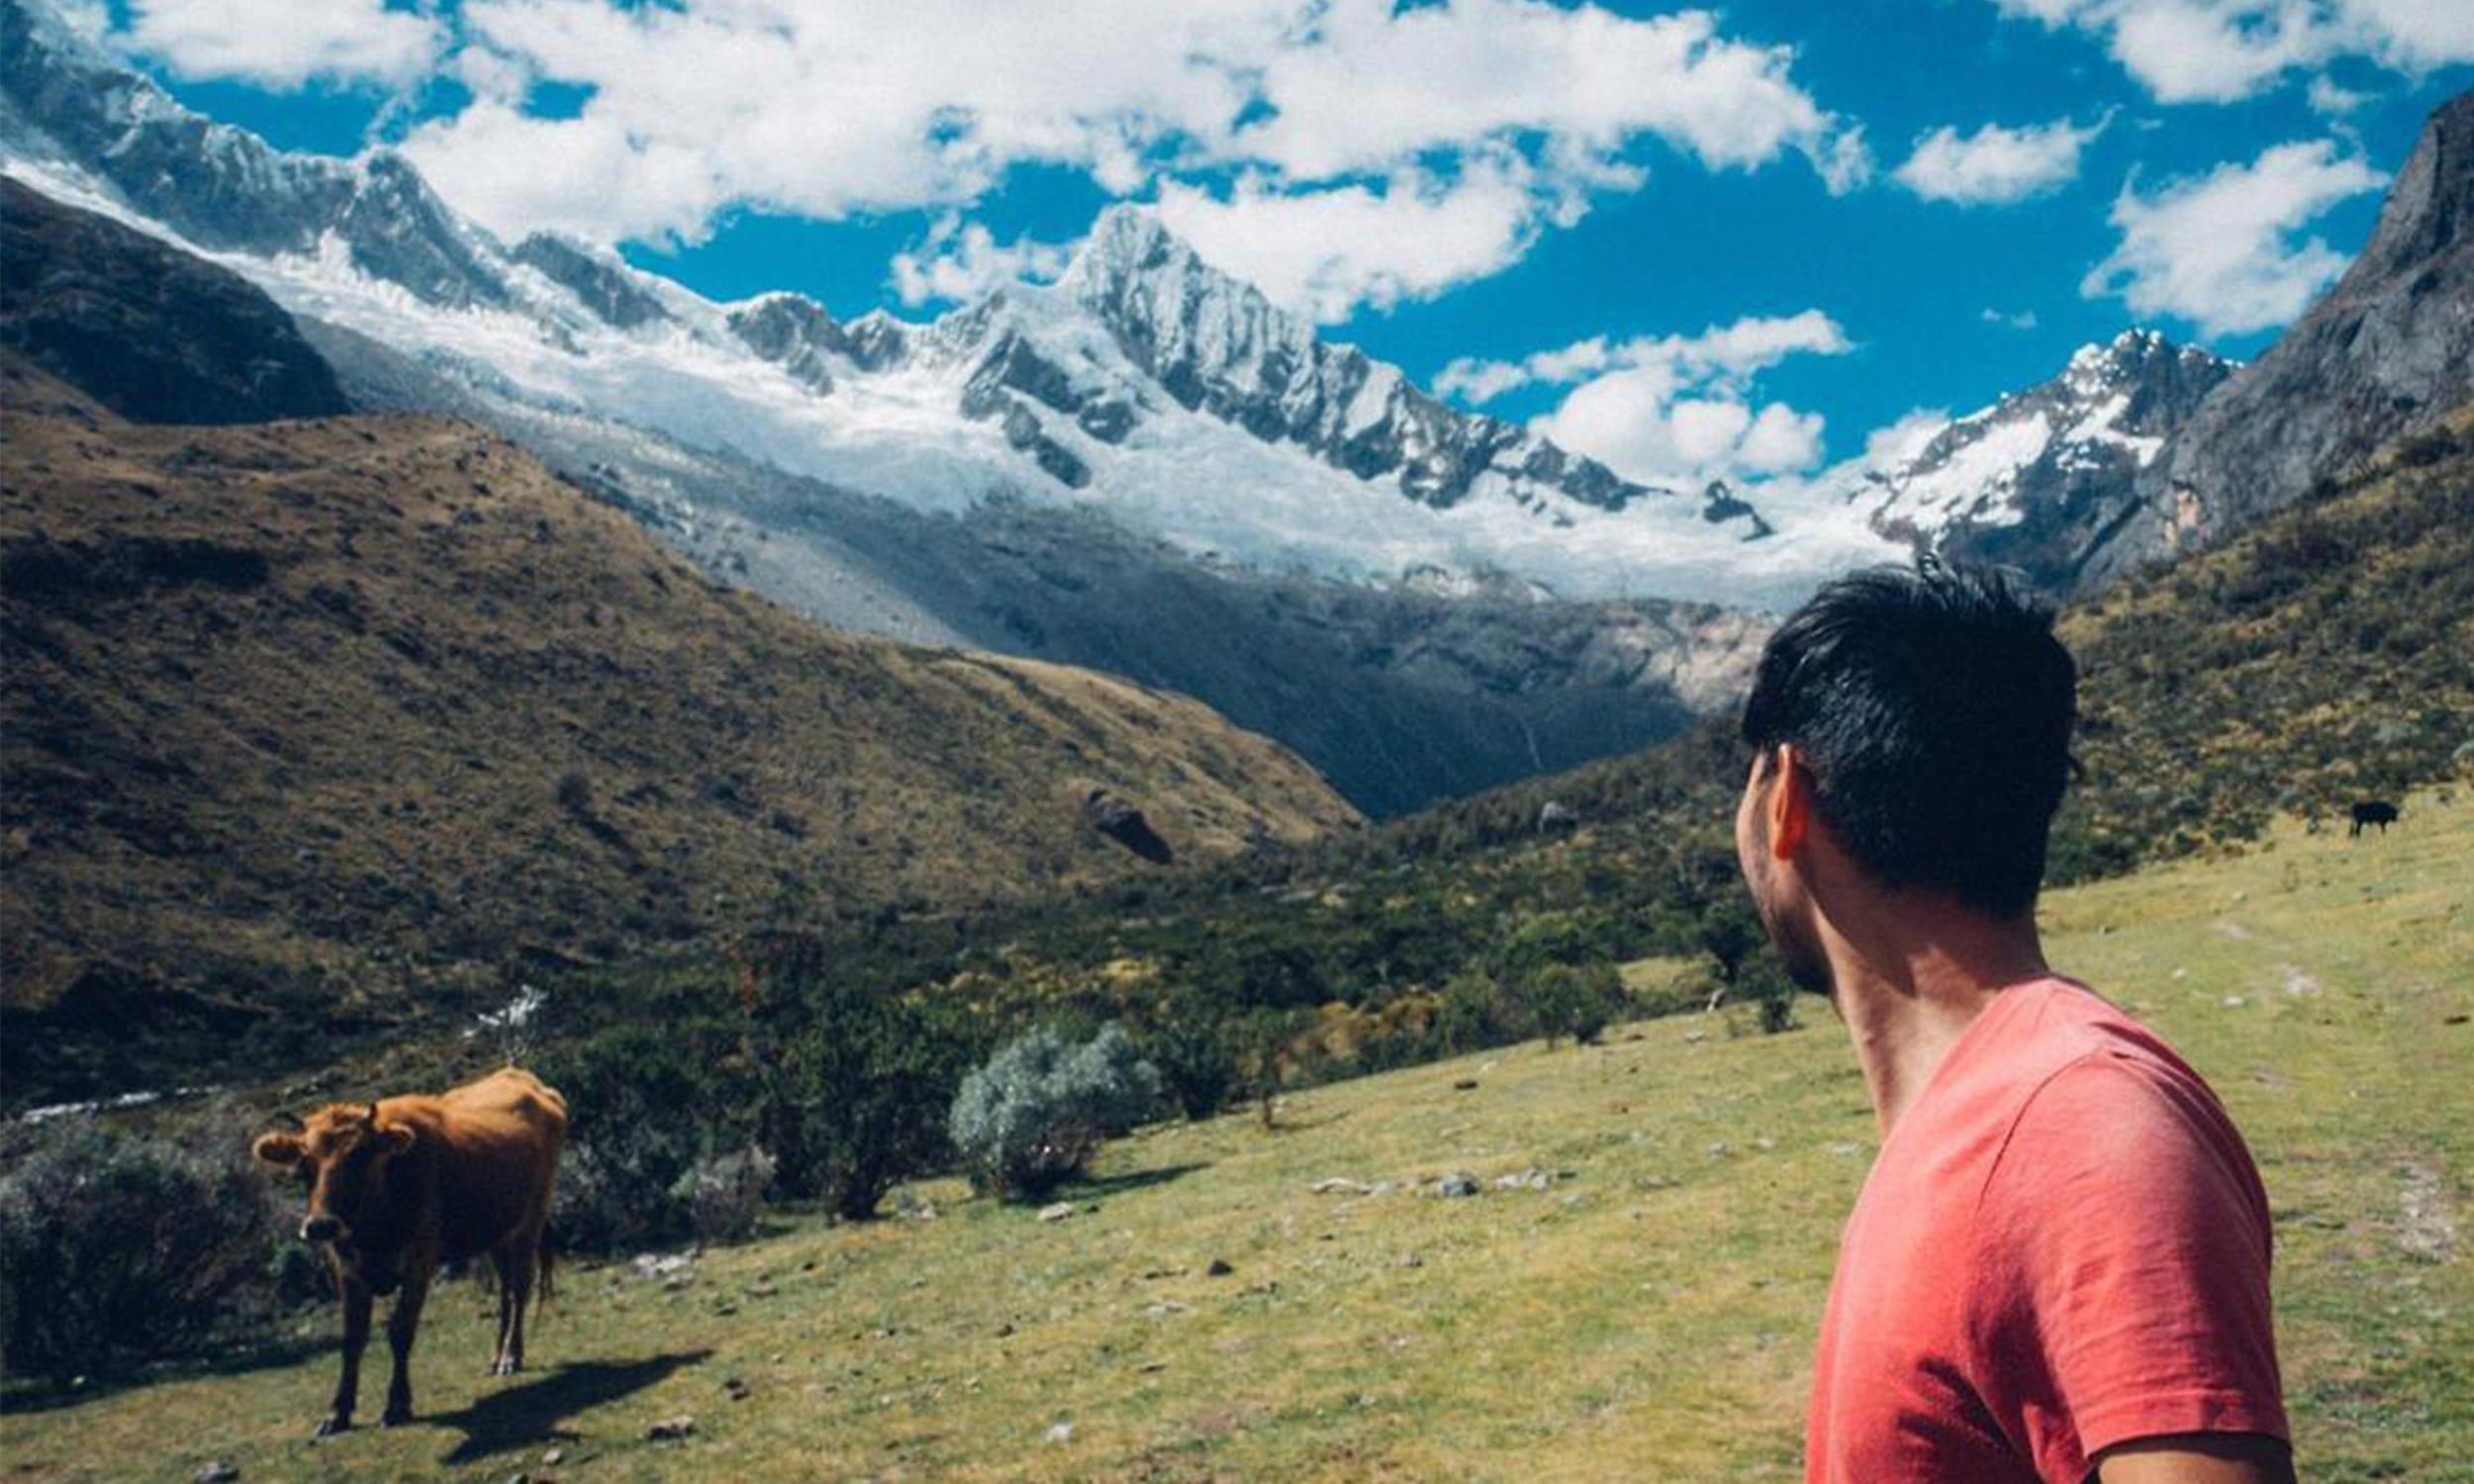 Here s Your Packing List for Peru - Tortuga Backpacks Blog cc28b990c4489